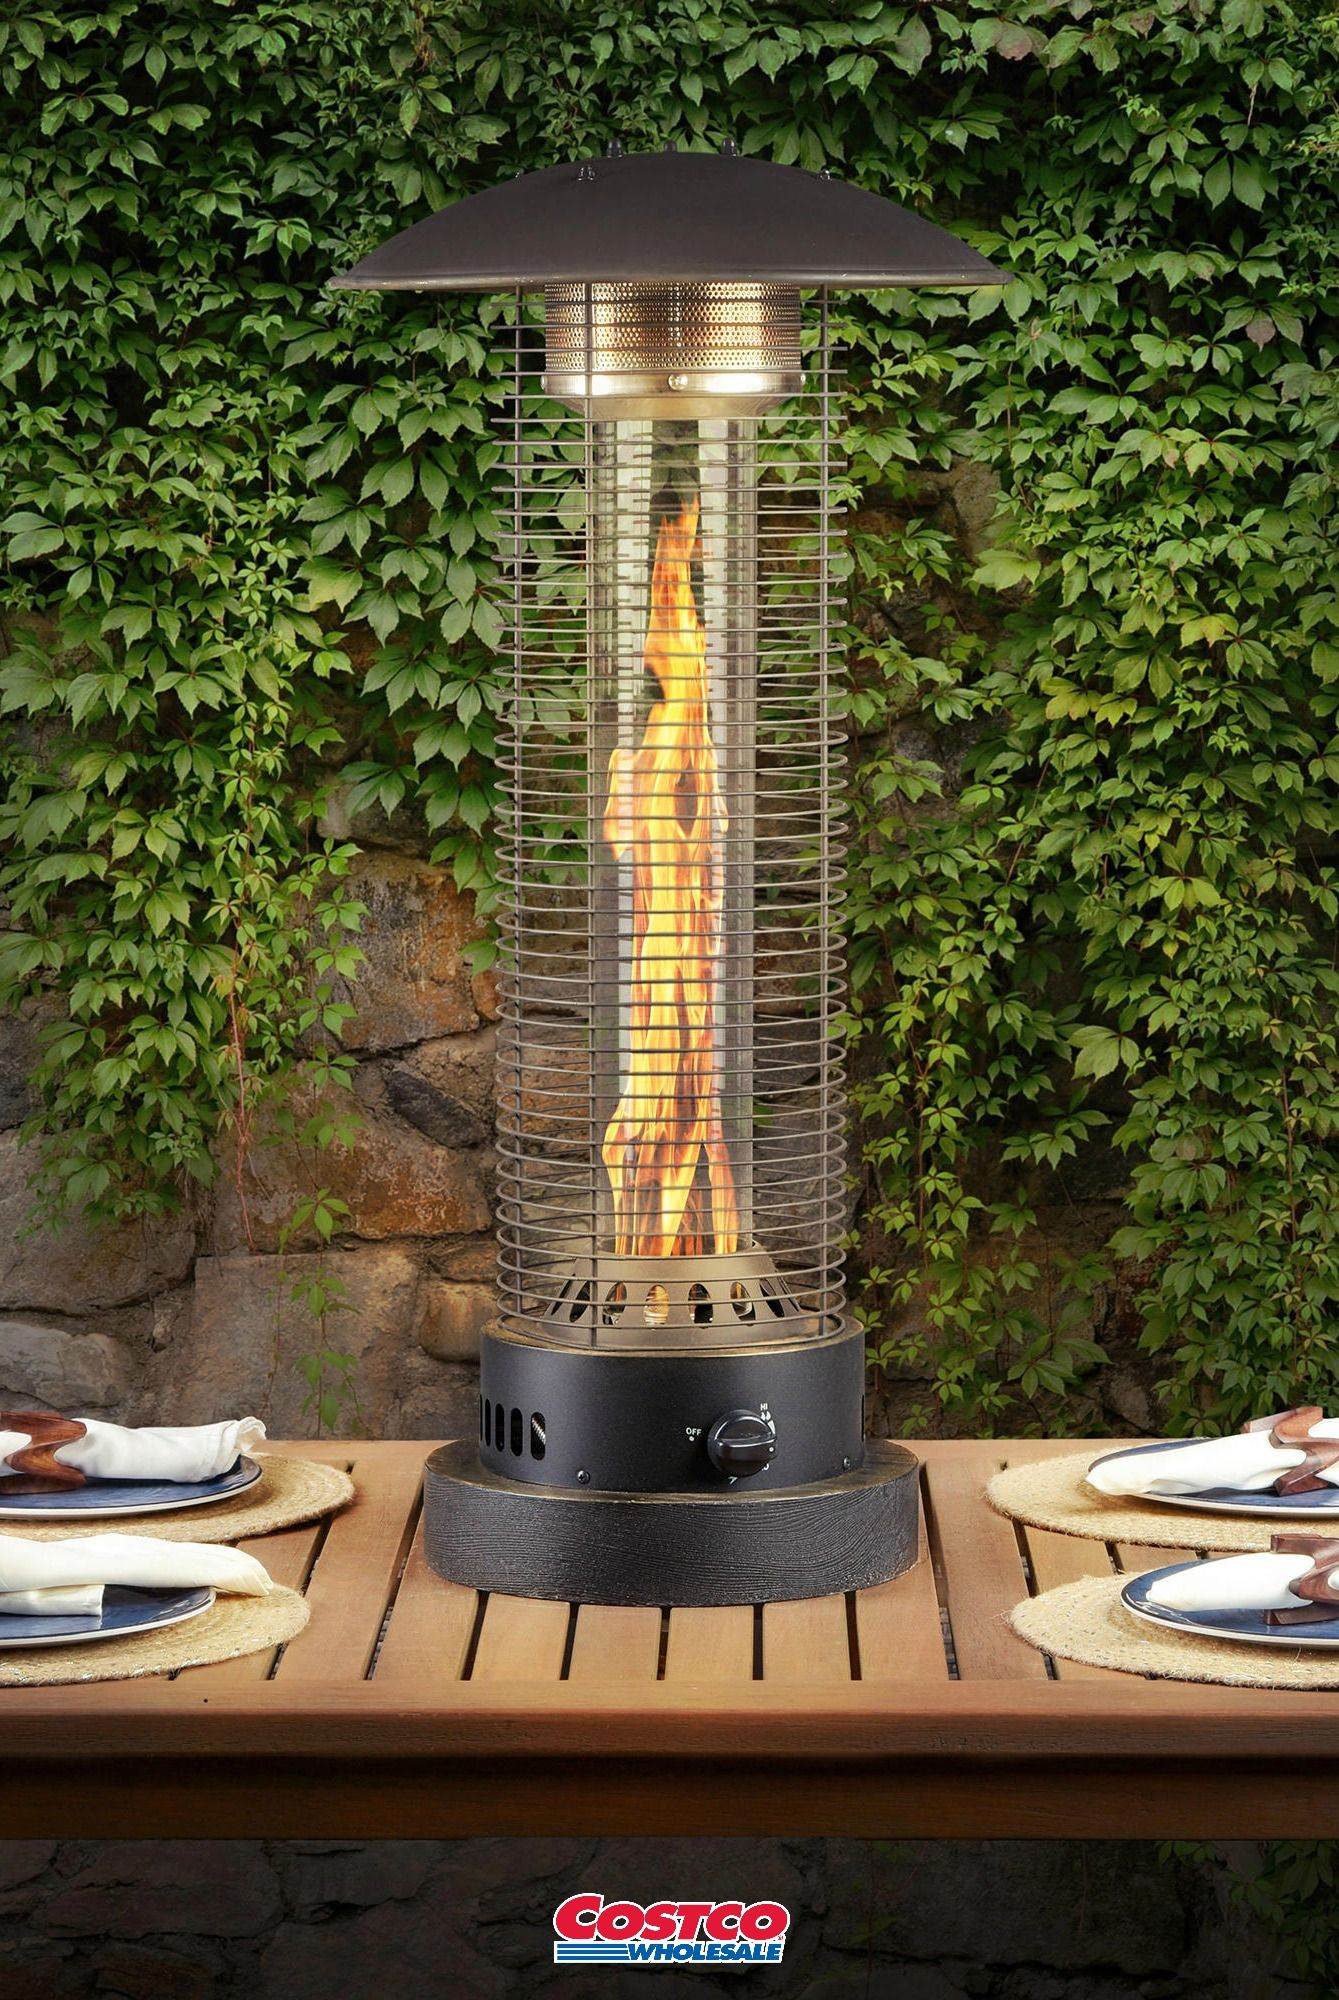 Northwoods Tabletop Heater Add The Powerful Element Of Fire To Your Outdoor Living Space With The Attractiv Tabletop Patio Heater Patio Heater Outdoor Heaters